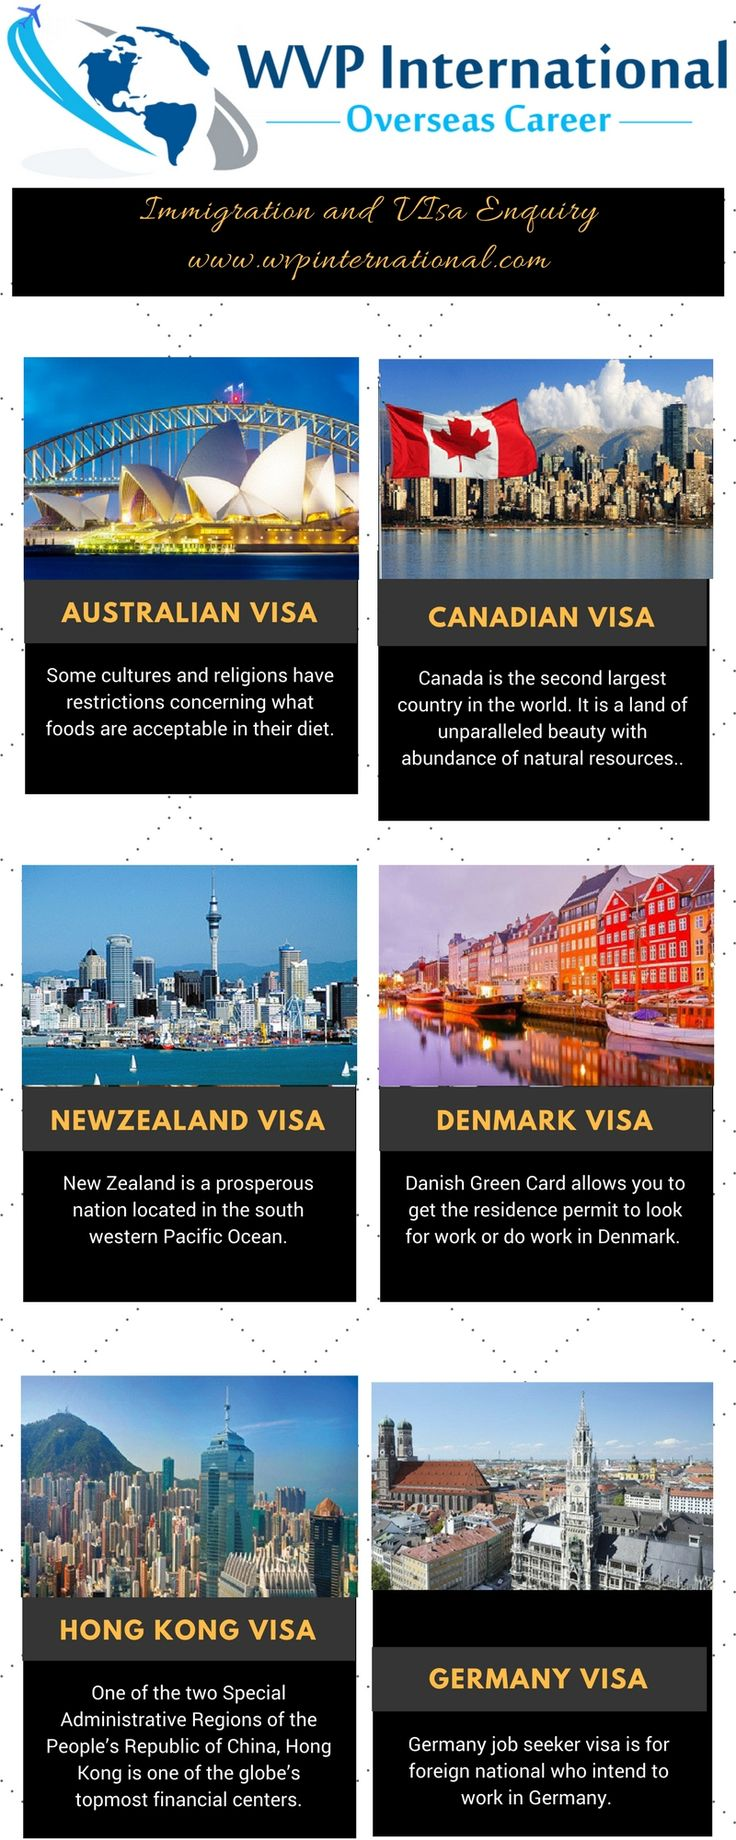 Wvp international offer canadian work visas are mainly based on the skilled worker points based system one of the visas known as federal skilled worker